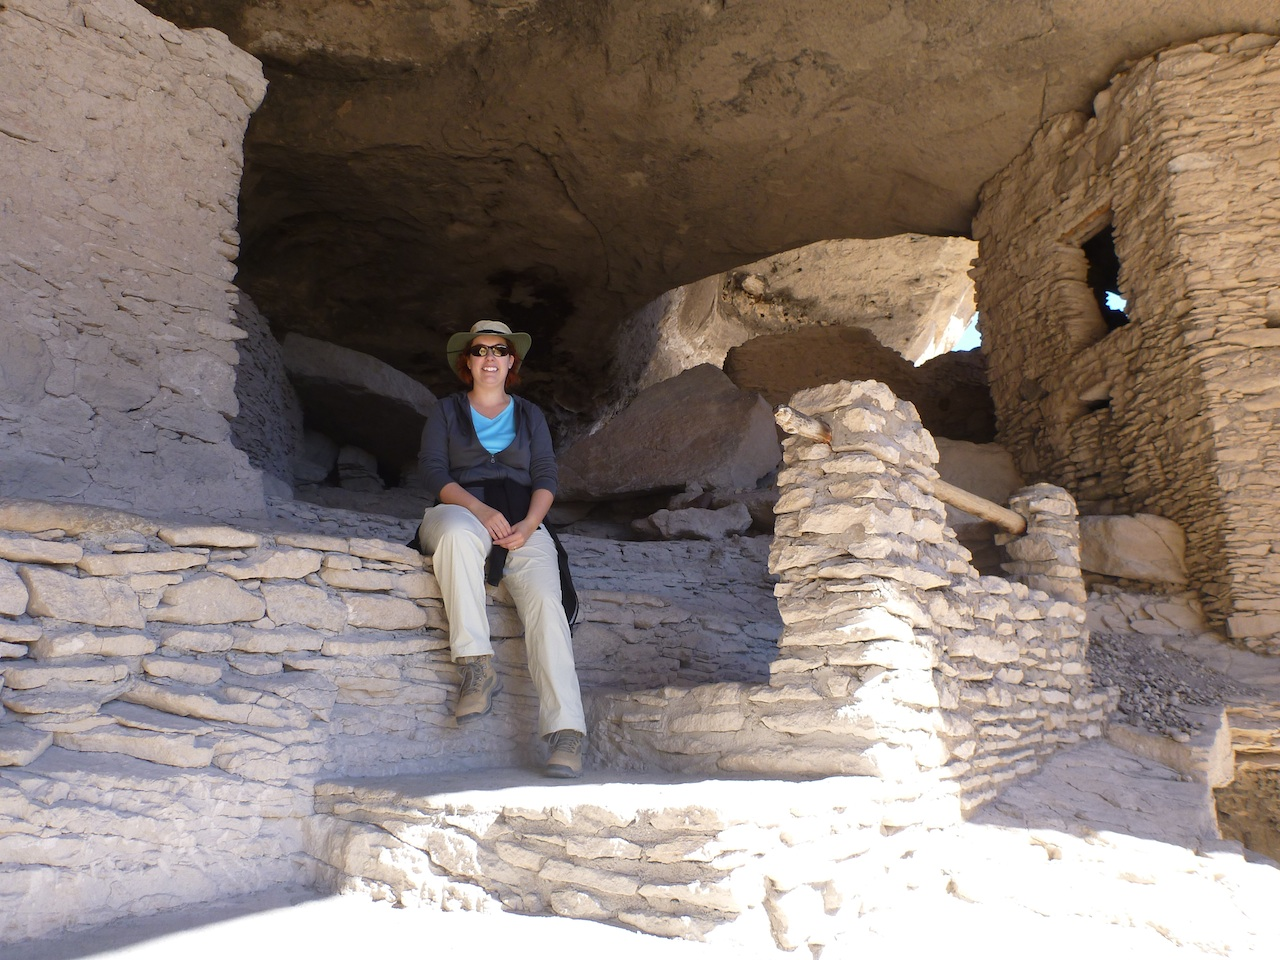 Brenda Taking A Rest Inside The Cliff Dwellings